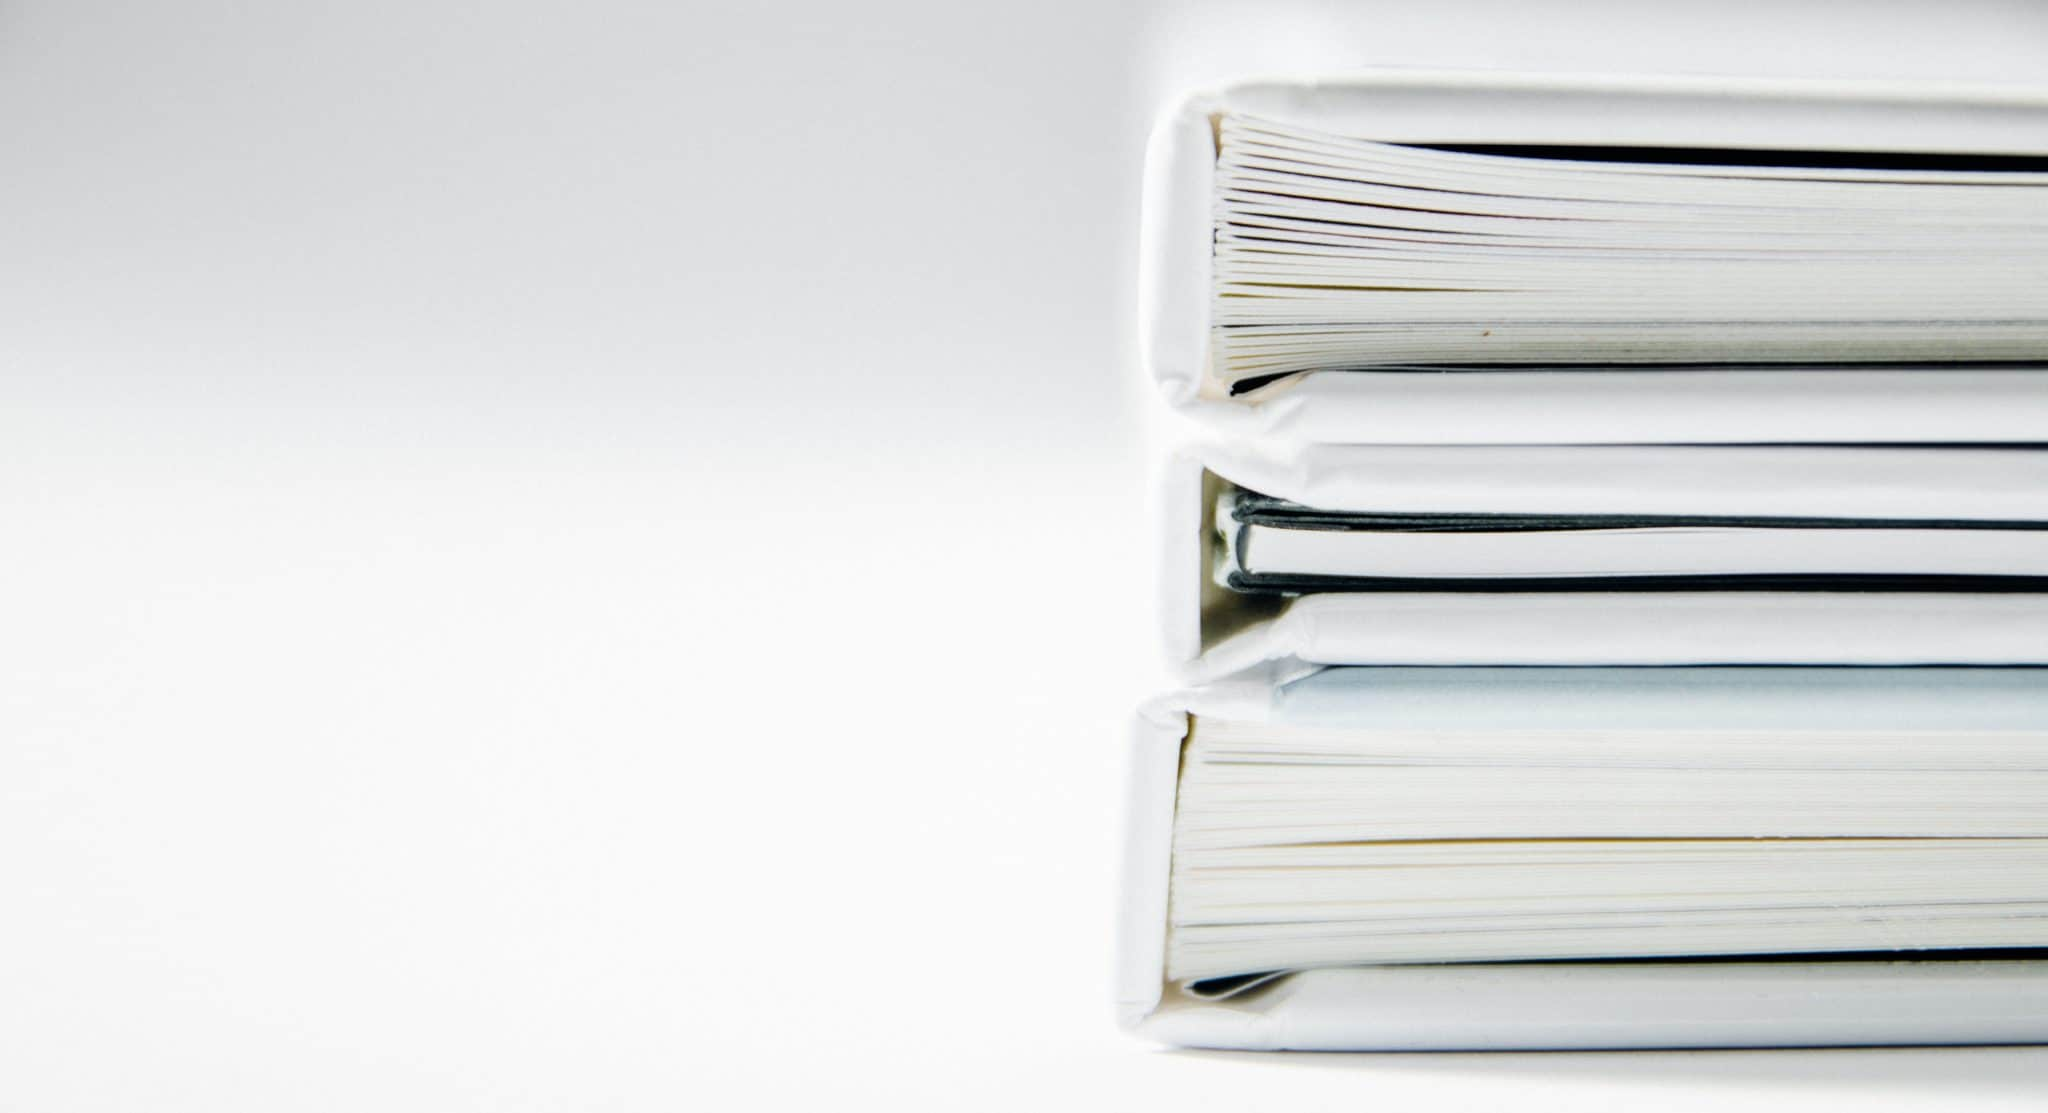 Franchise operations manuals and library